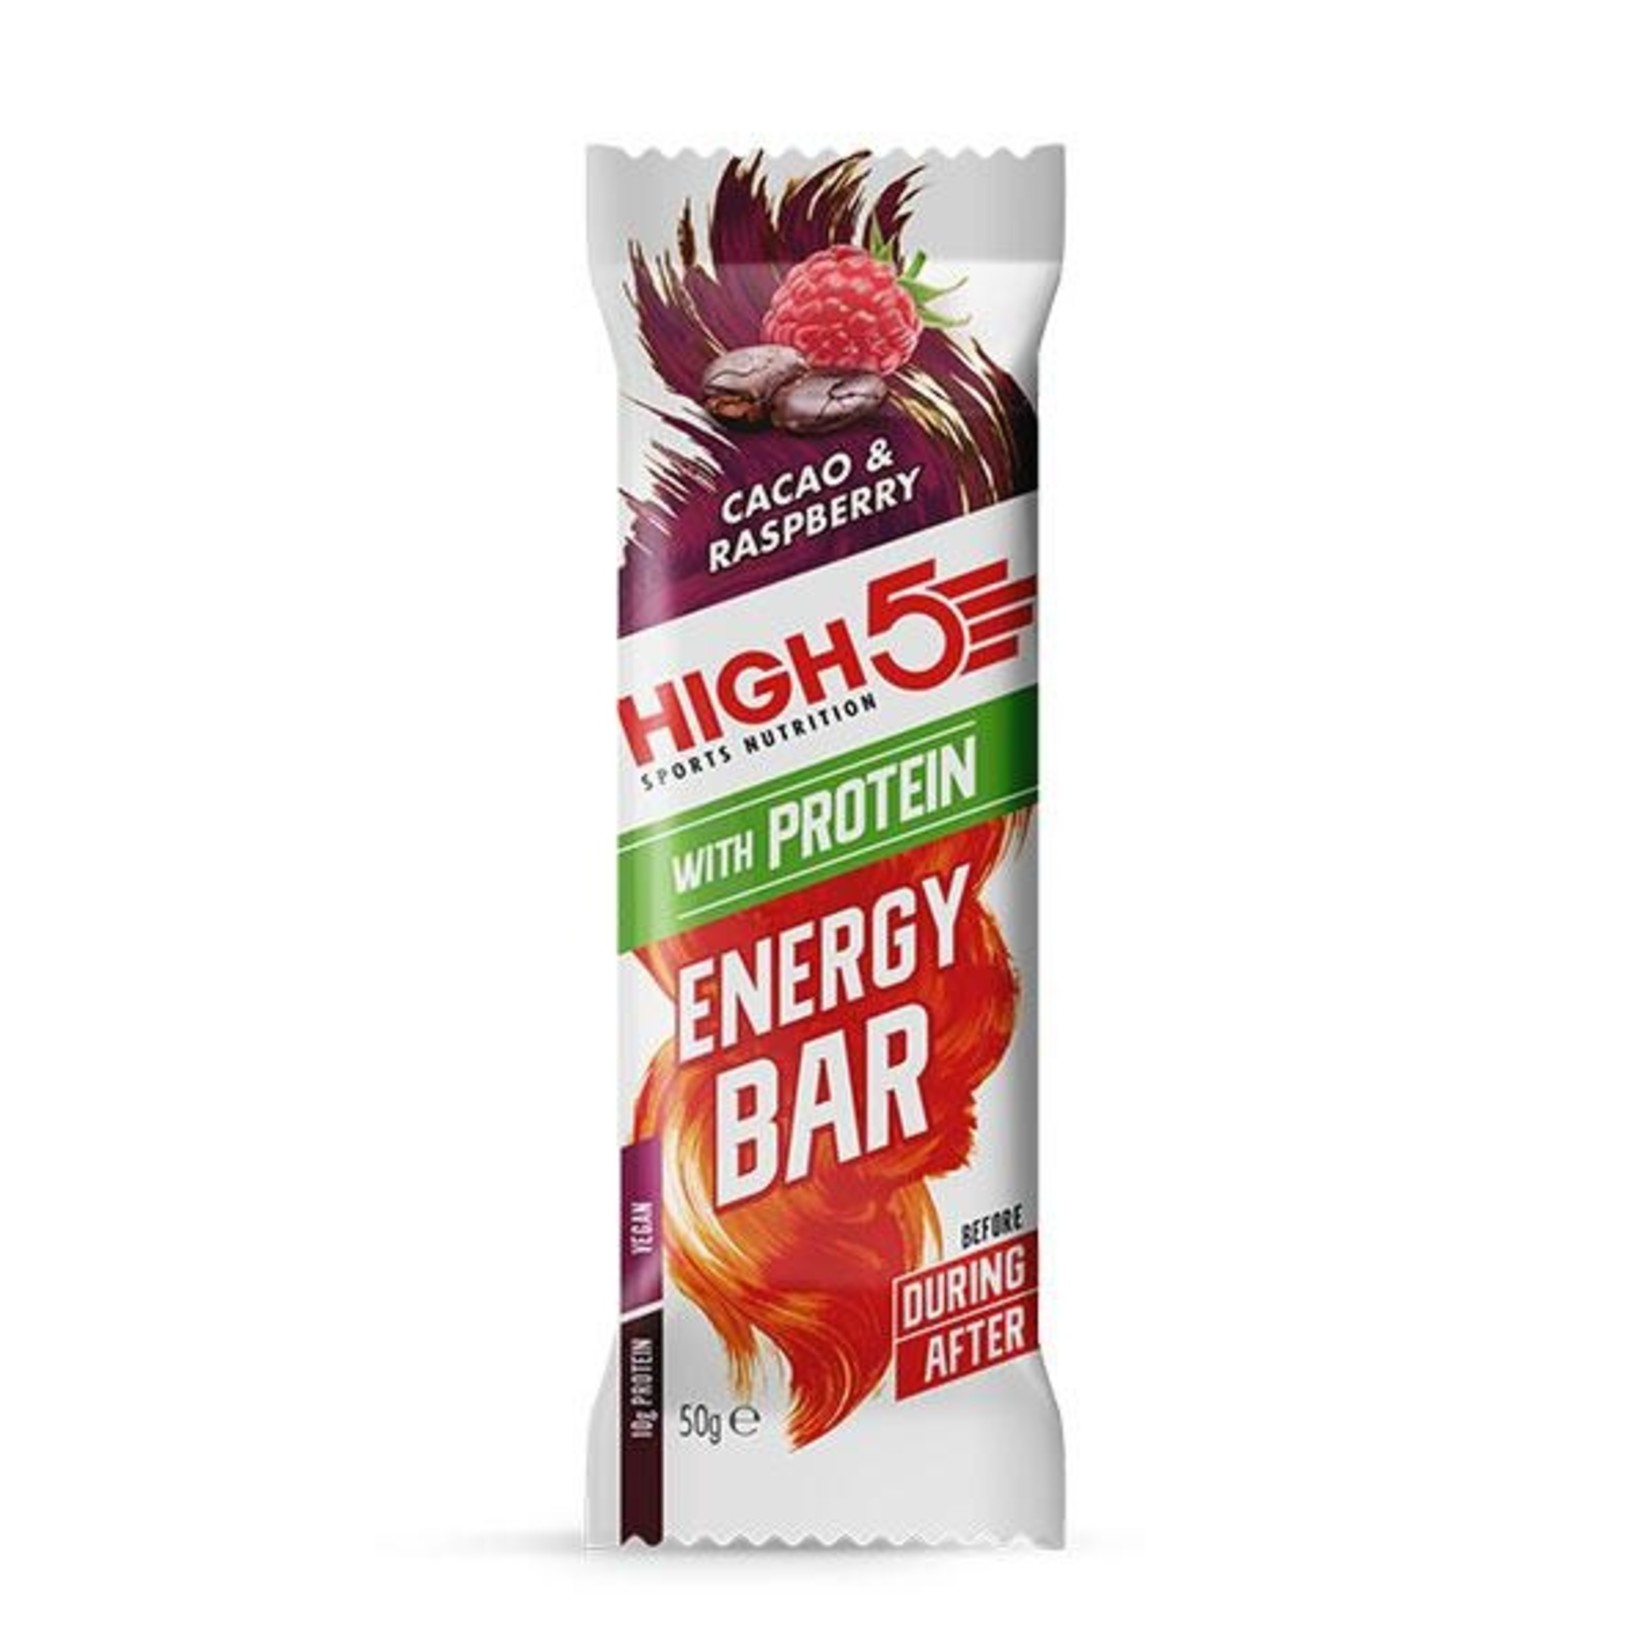 High 5 HIGH 5 ENERGY BAR WITH PROTEIN COCOA RASPBERRY